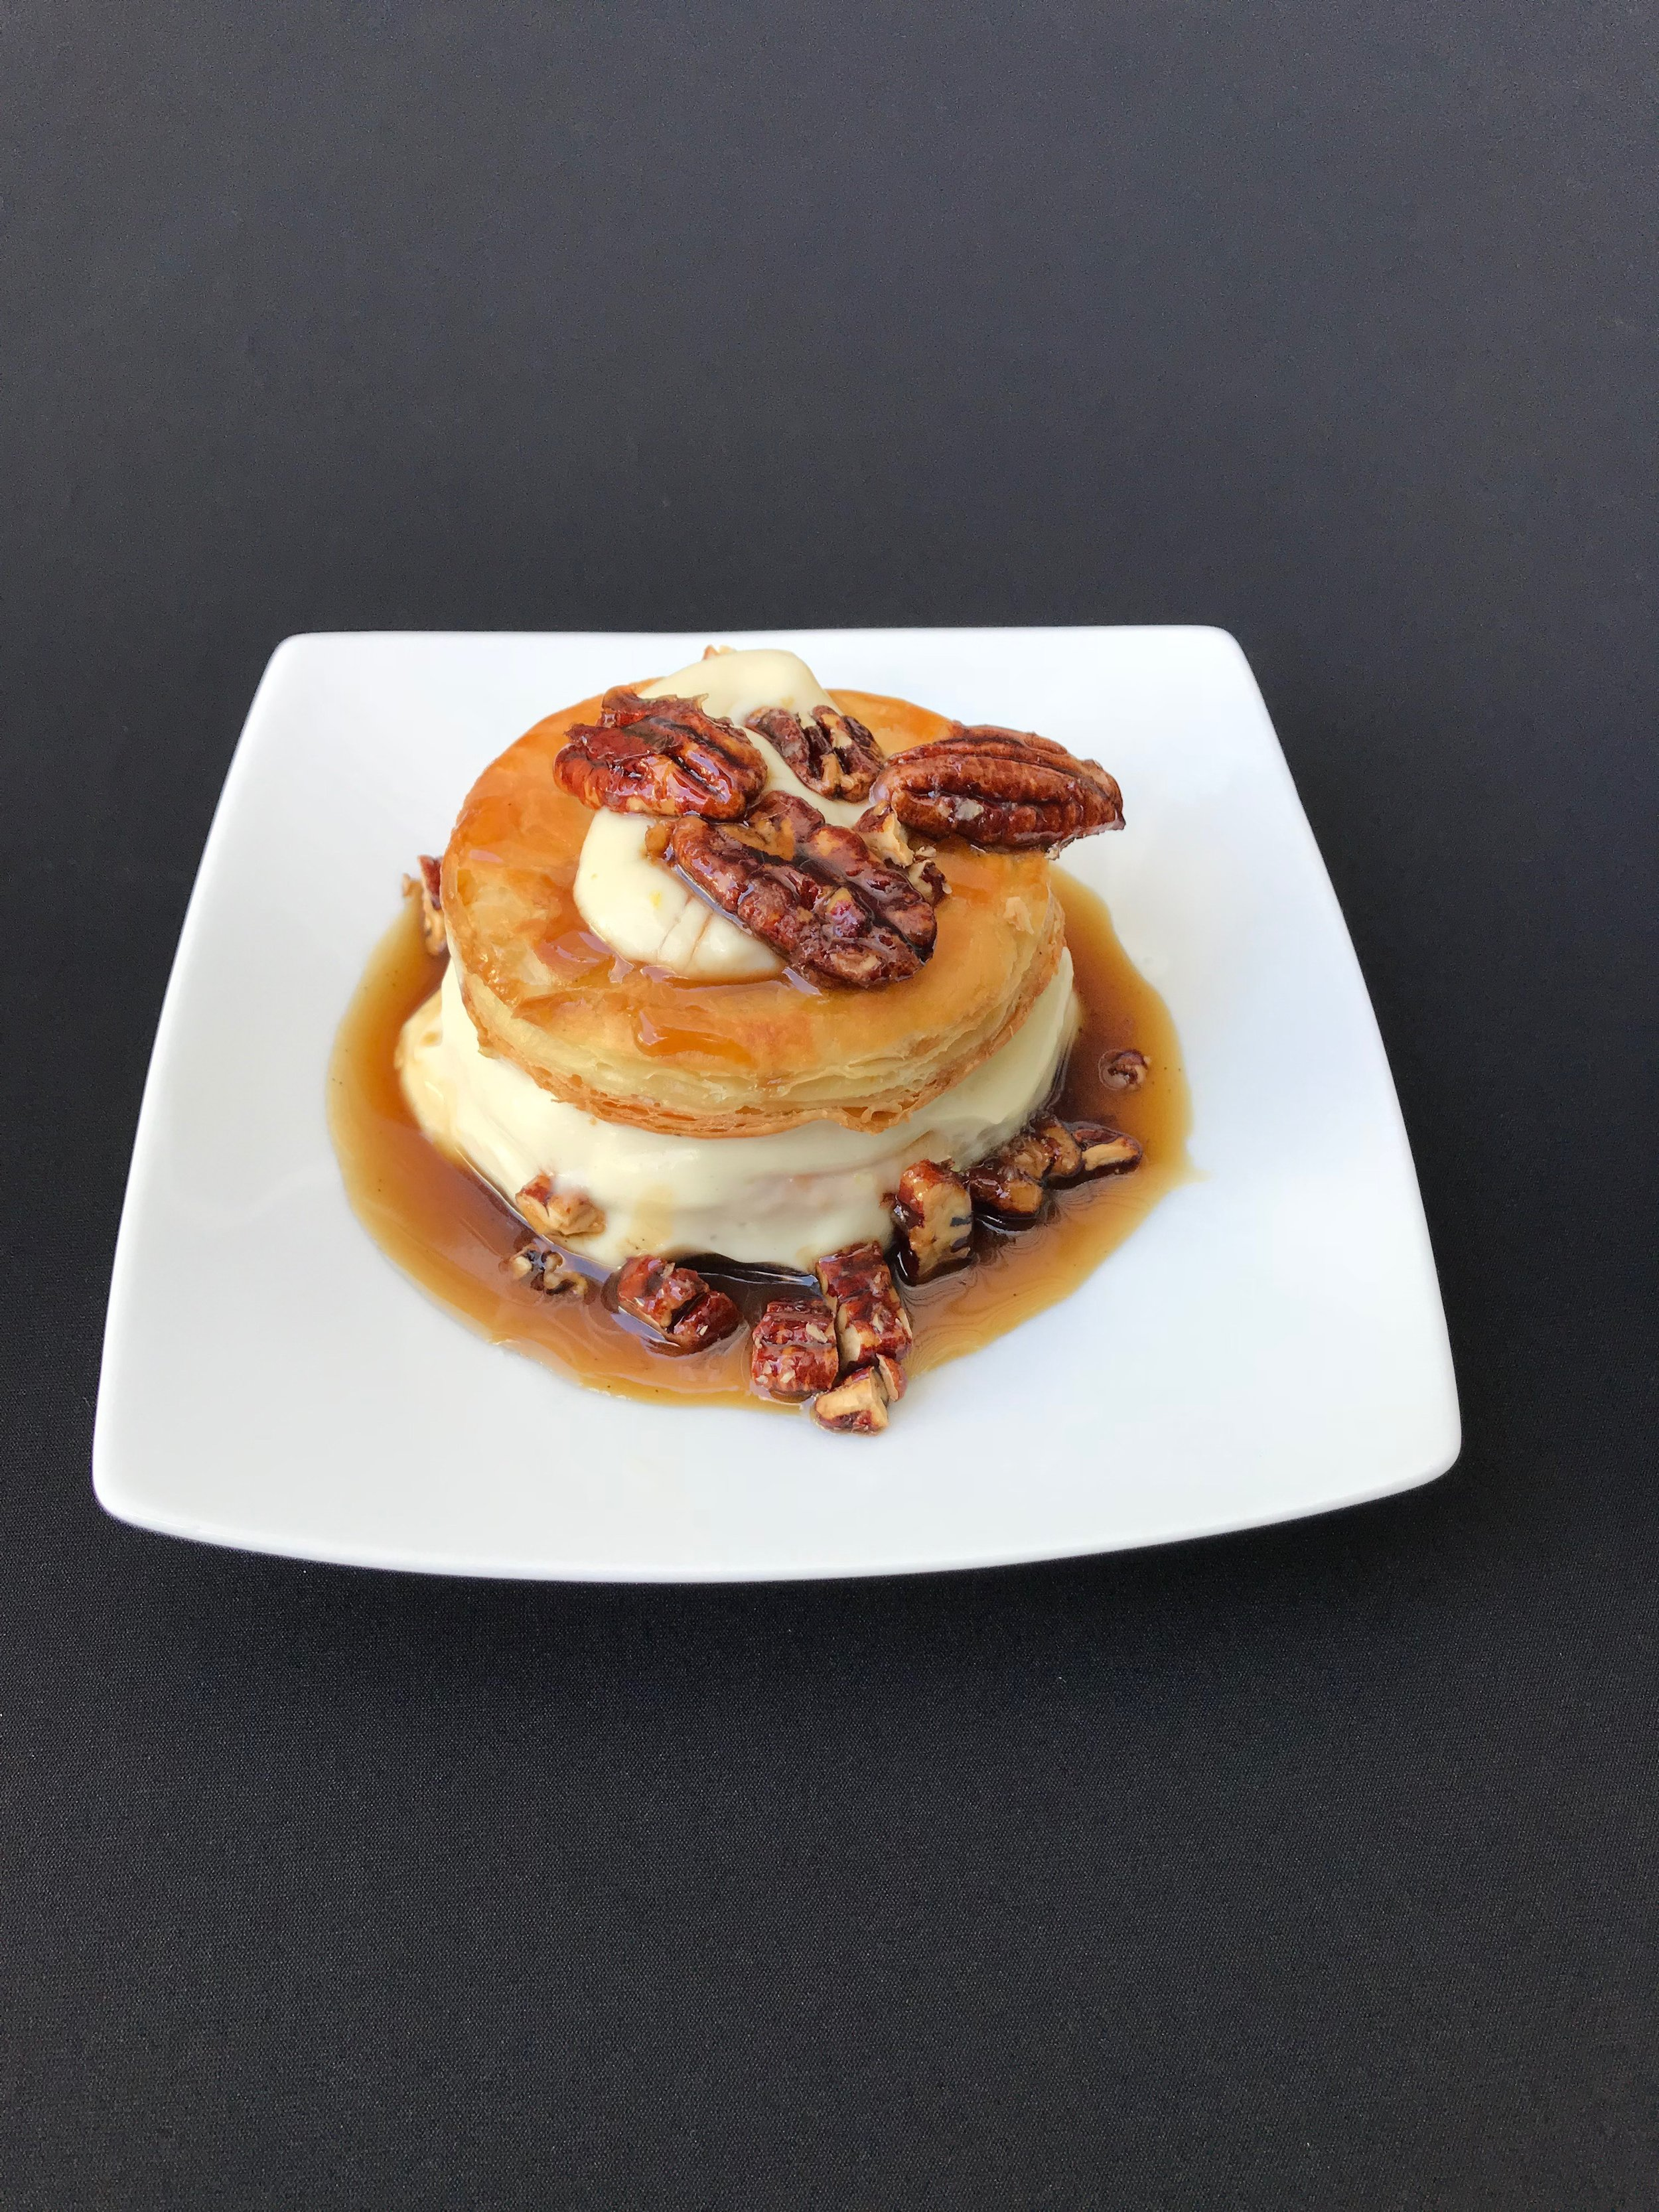 Puff Pastry Soufflé - Baked puff pastry dough with orange scented cream filling, caramel butter sauce, and candied pecans